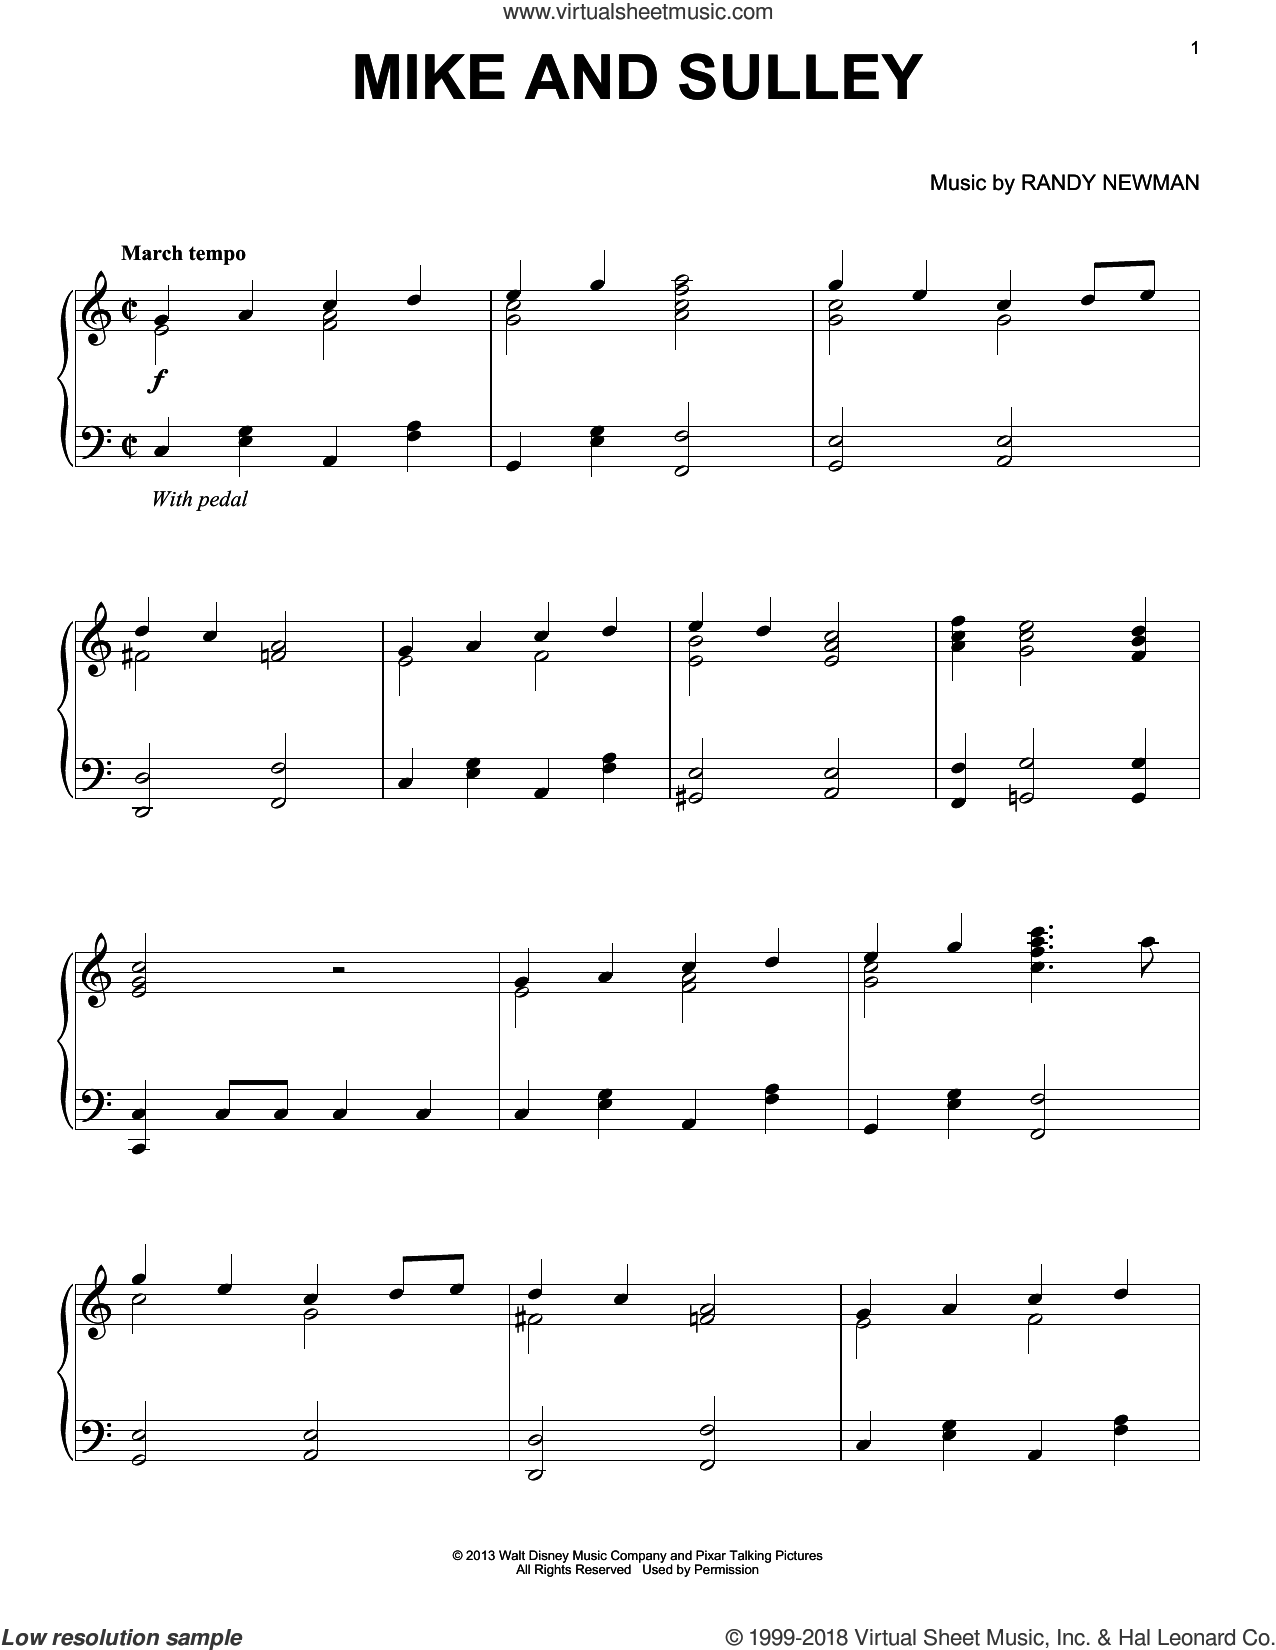 Mike And Sulley sheet music for piano solo by Randy Newman. Score Image Preview.